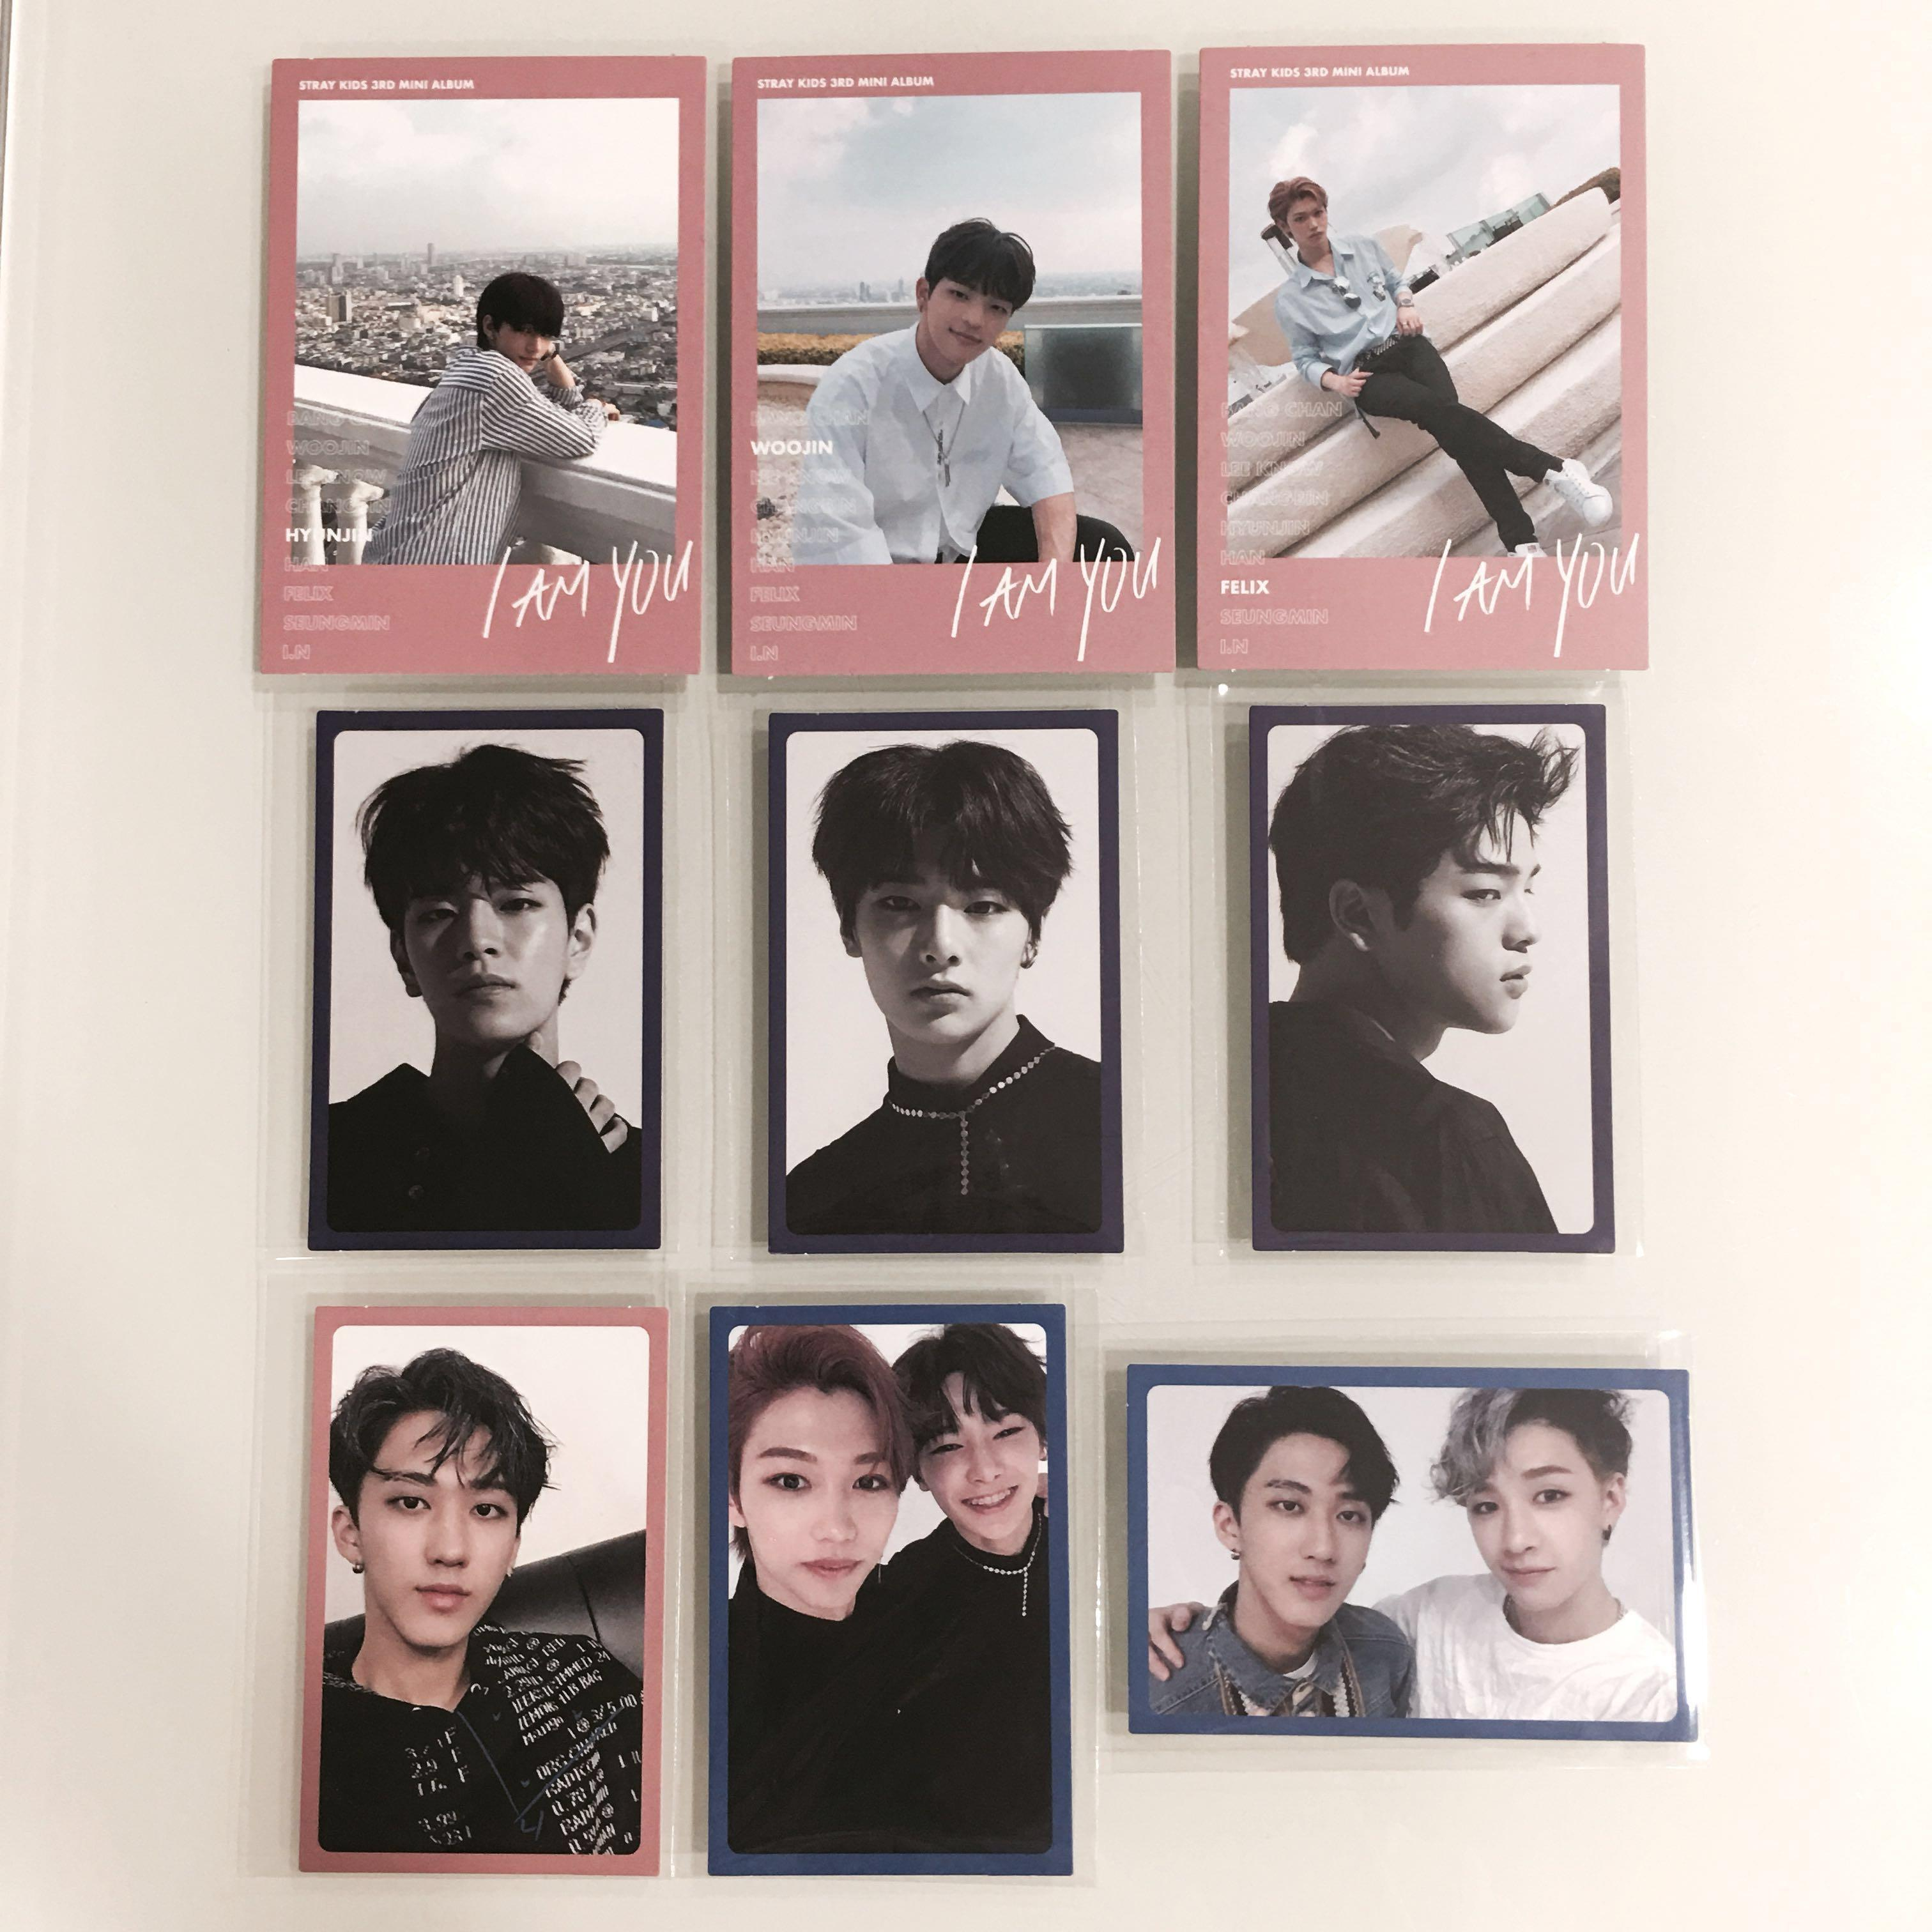 CLEARANCE] Stray Kids I Am You Photocards/PCs, Entertainment